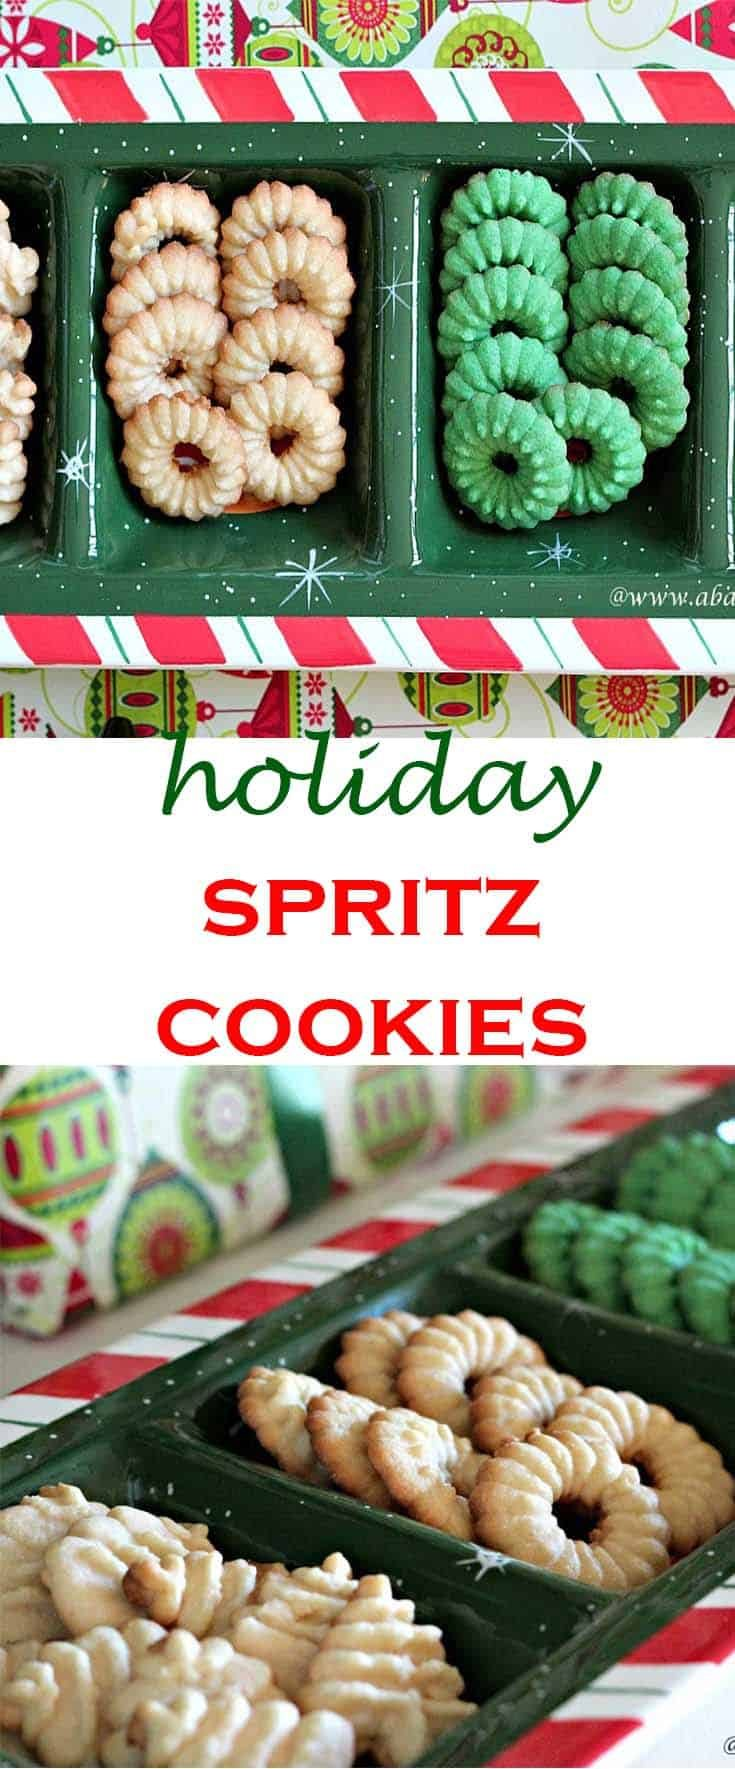 Baking Spritz Cookies with a Cookie Press gives a uniformity unmatched by most other baking methods. This traditional Christmas cookie can be made in many shapes-- flowers, wreaths, or trees-- and left plain or decorated with icing. #cookiepress #spritzcookies #abakershouse #Christmas #holidaybaking #cookieexchang